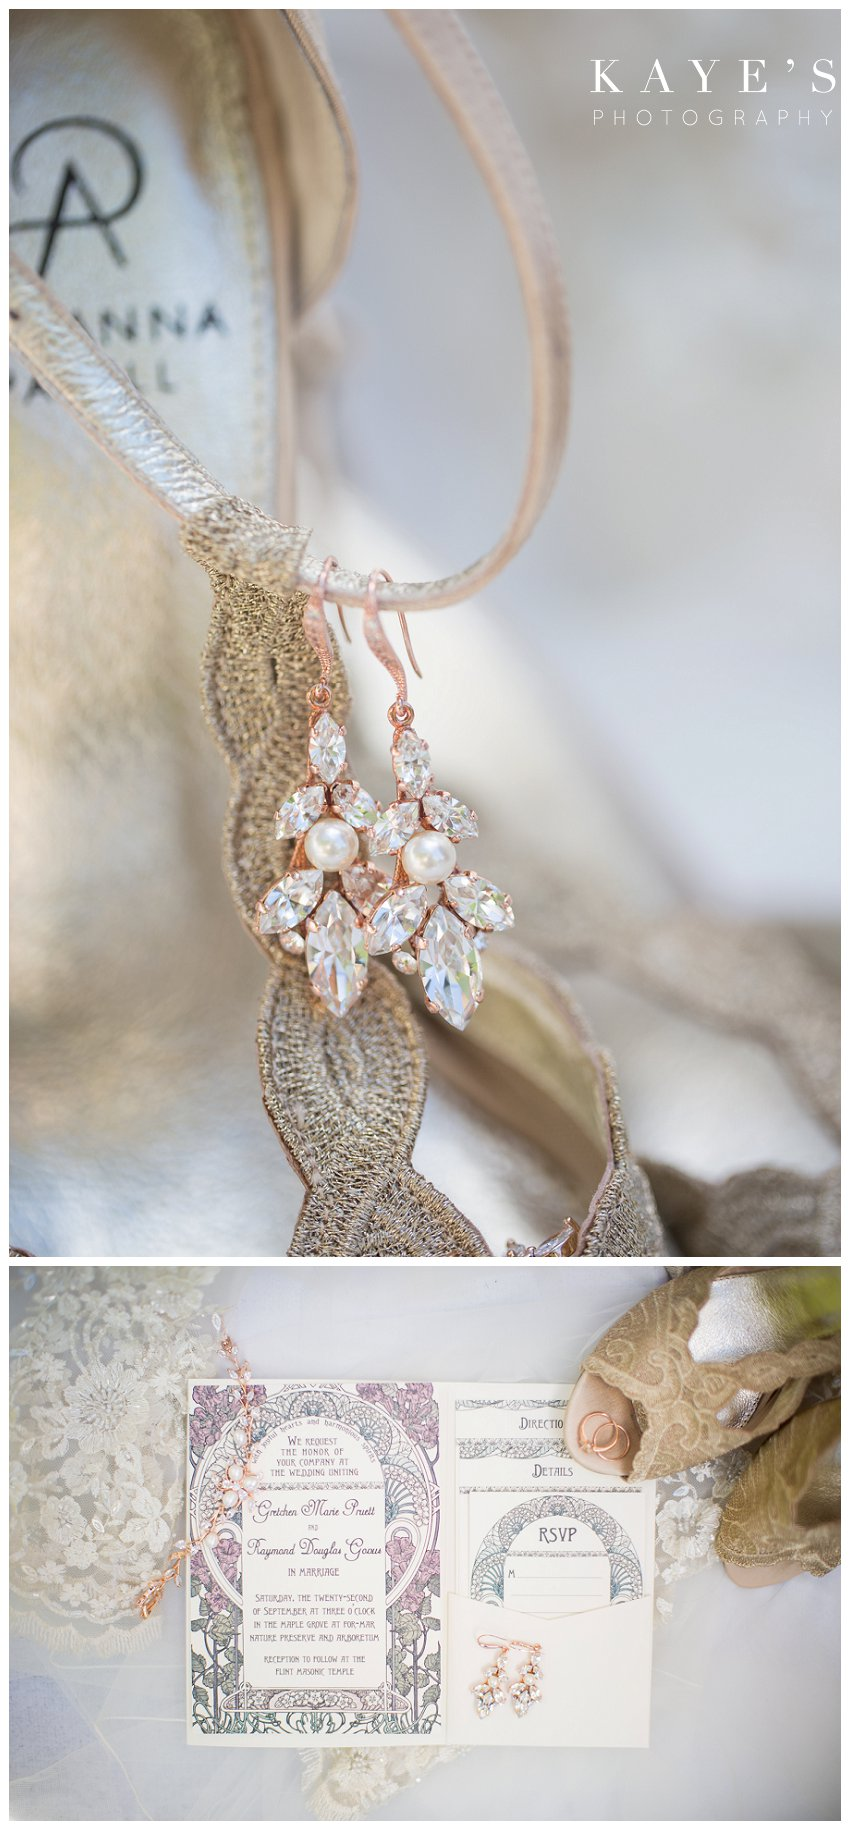 Bride details and shoes for fall wedding in Flint Michigan